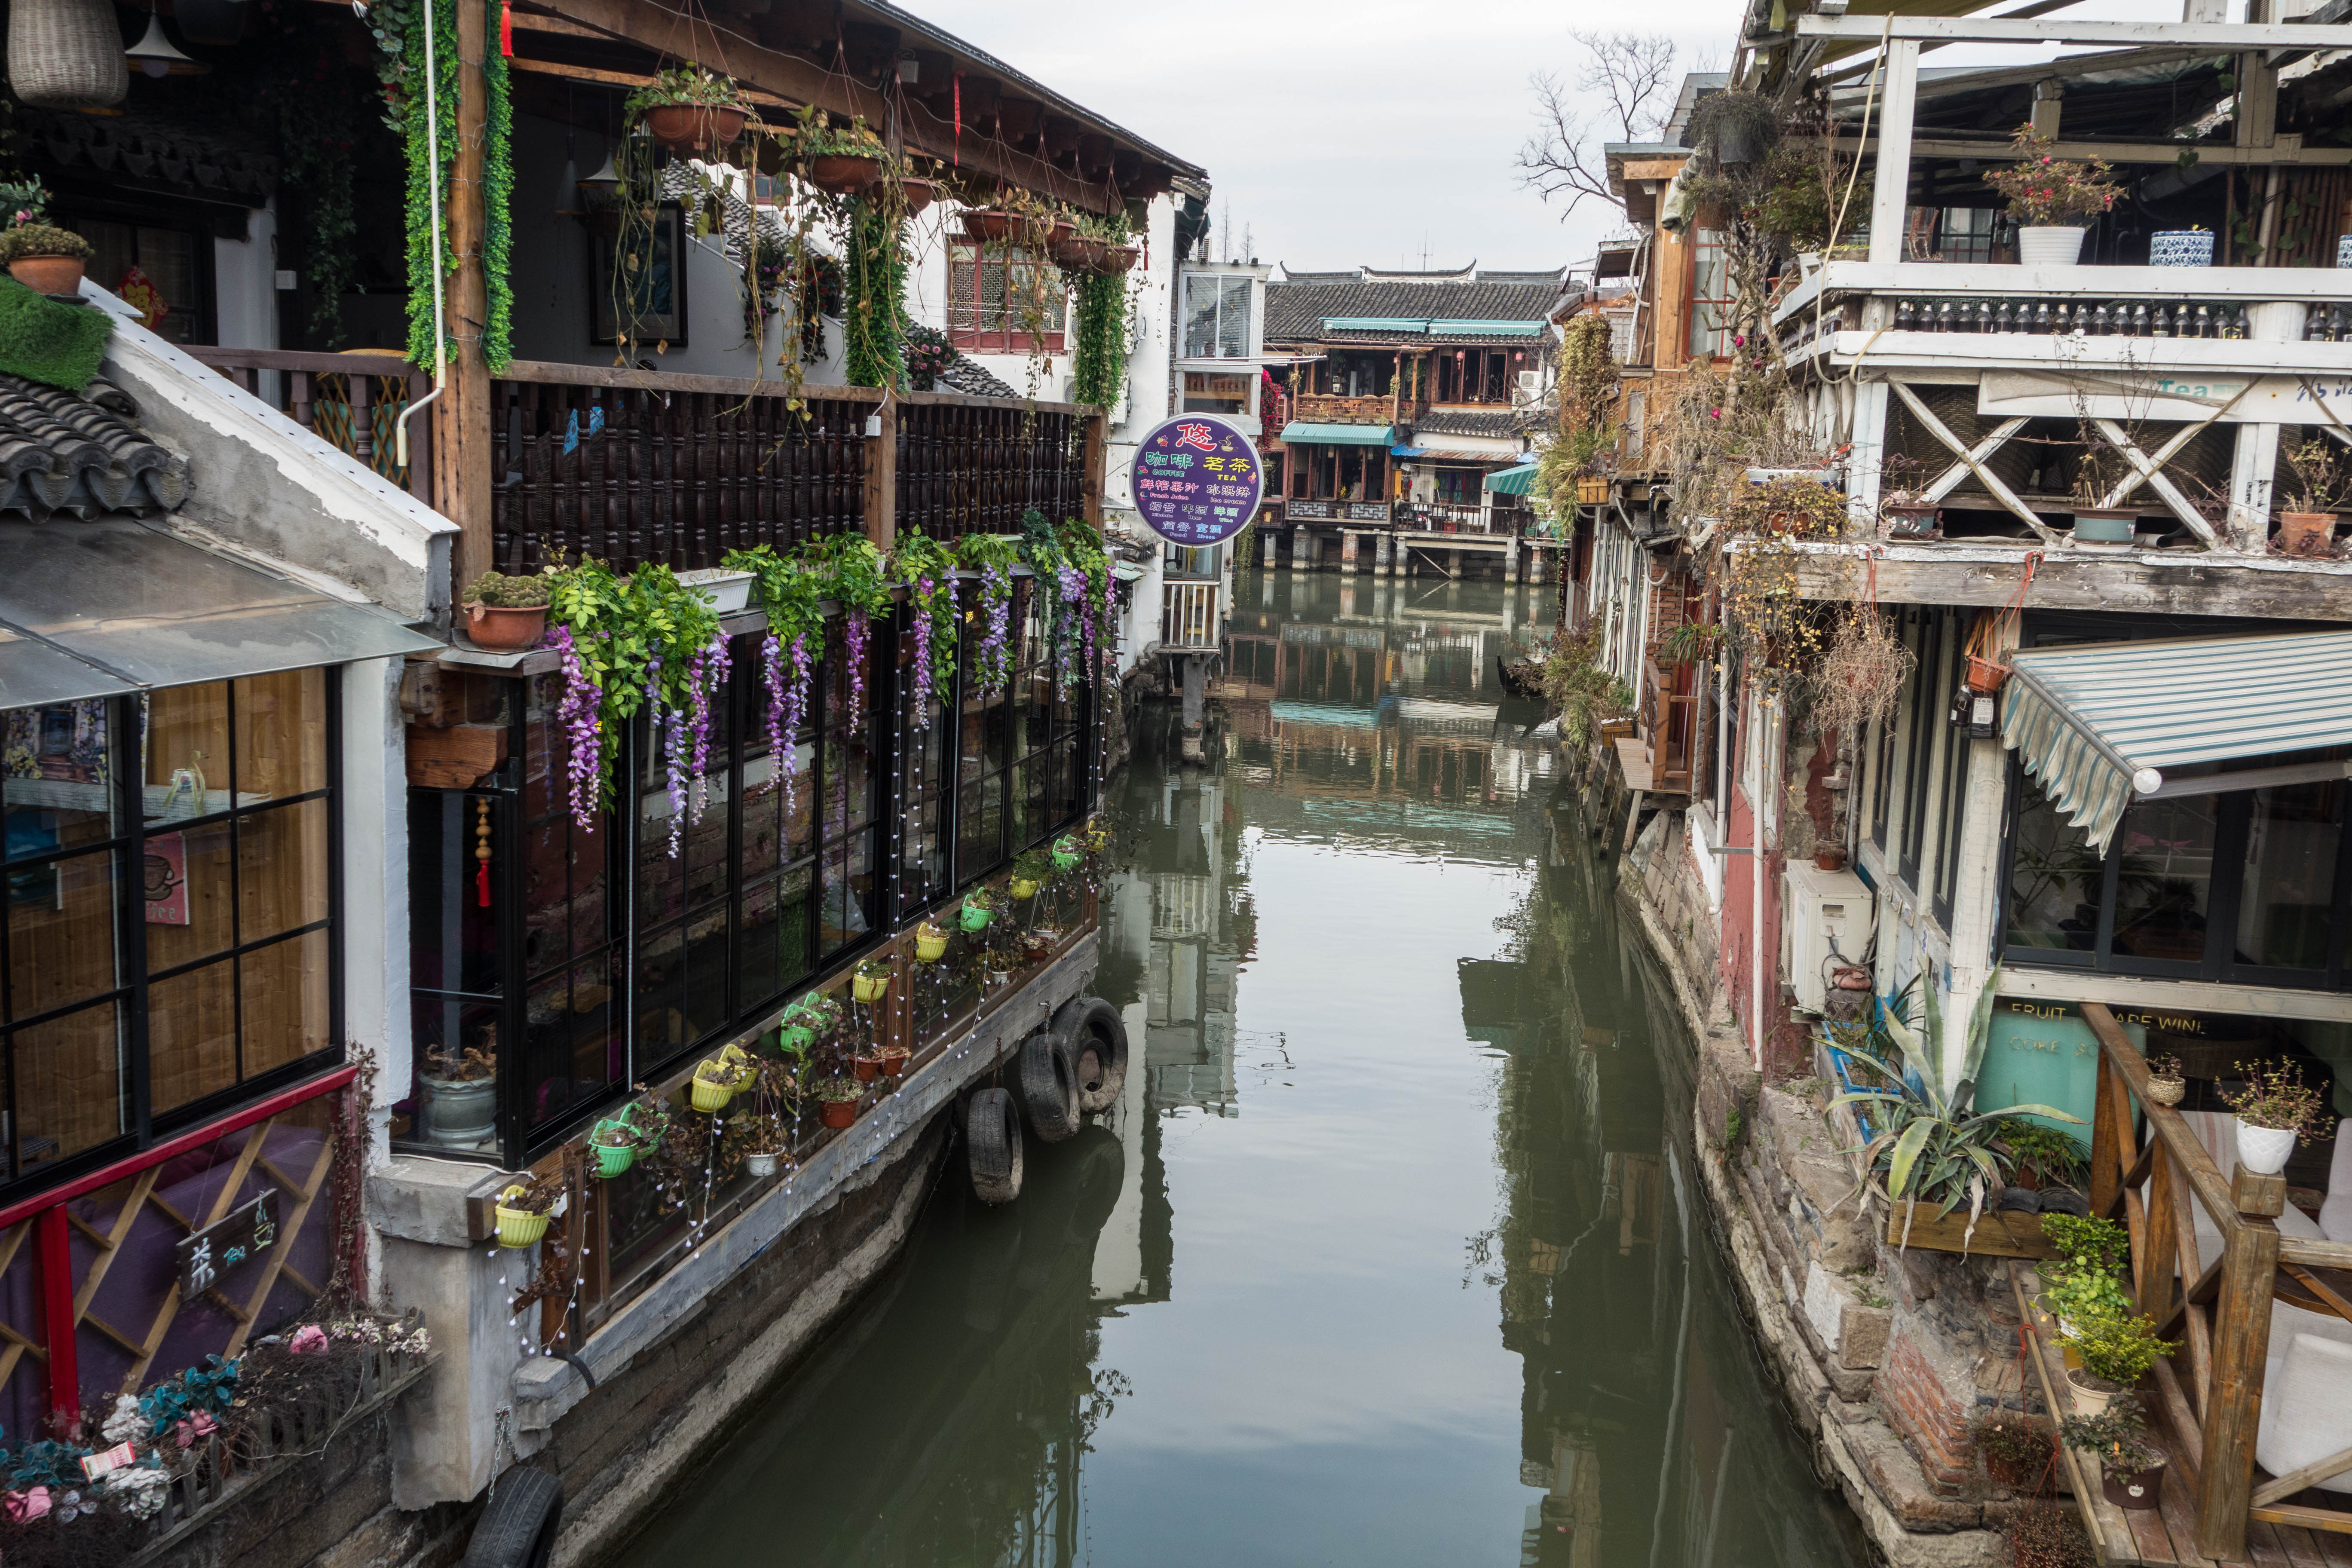 canal in a watertown author yin tom near shangha